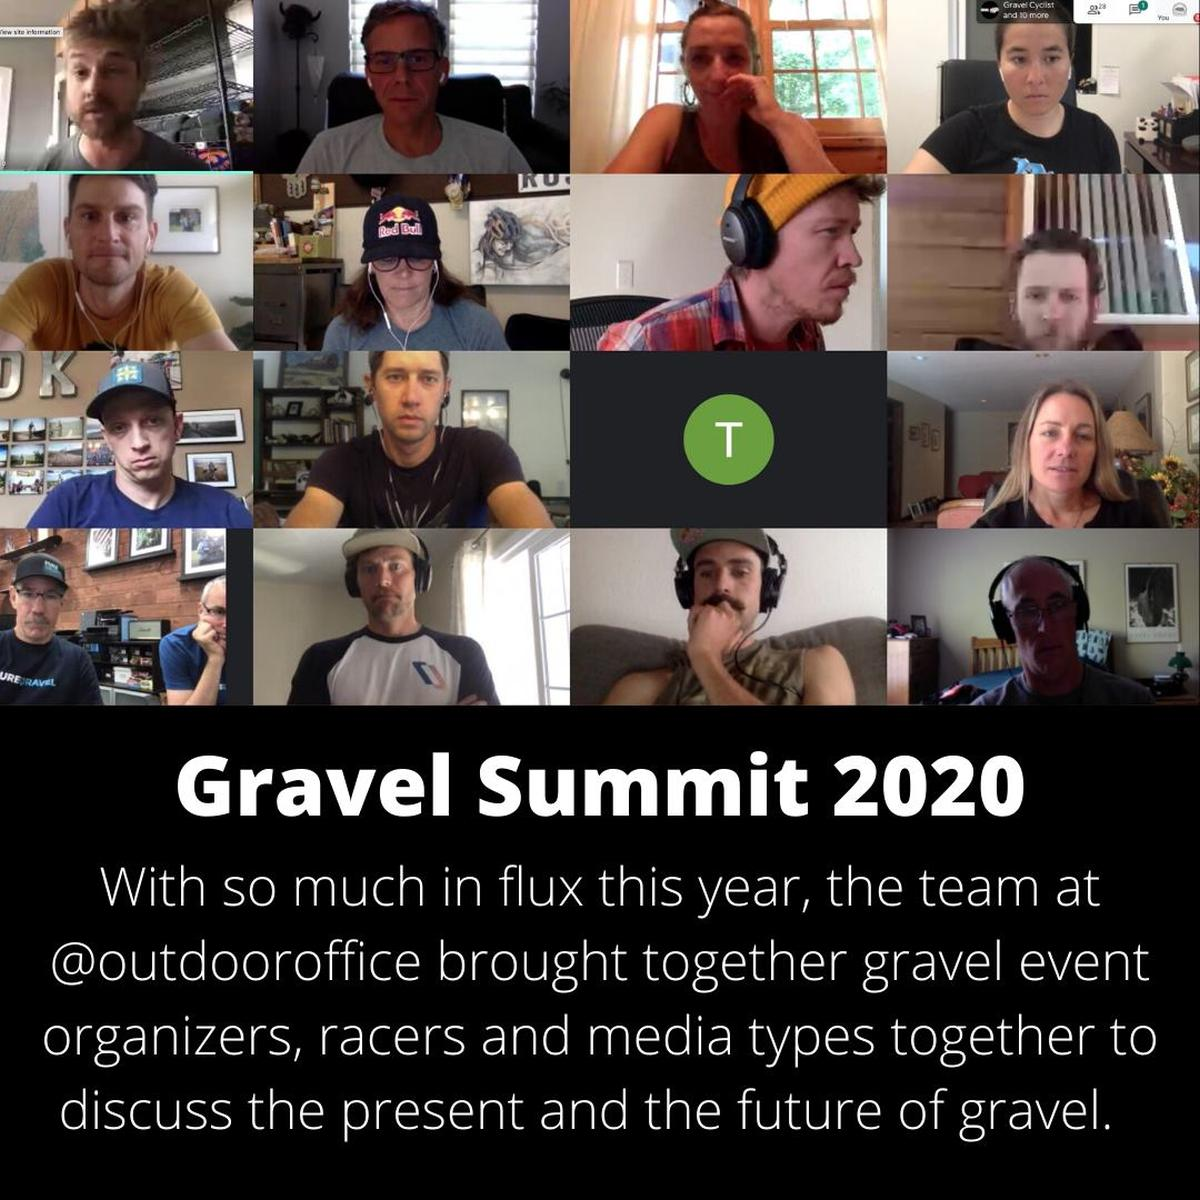 gravel summit 2020